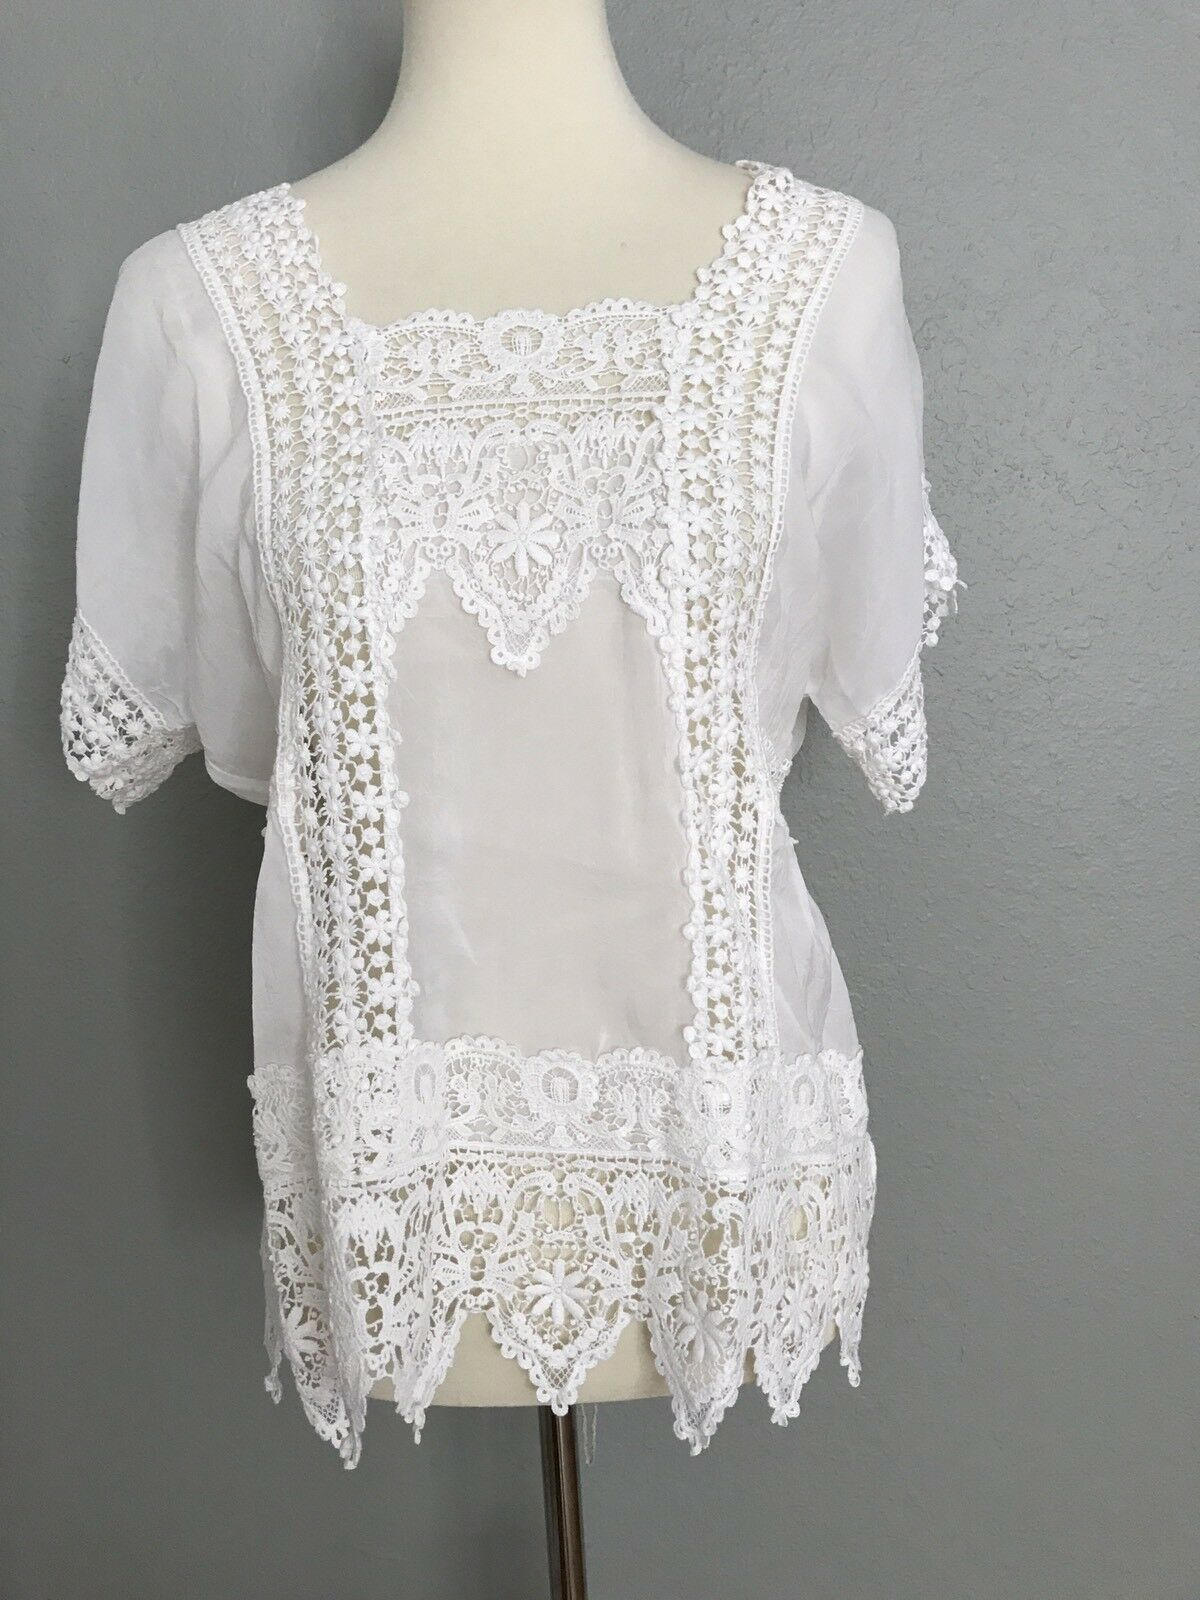 NWT Johnny Was Classic Lacey Insert Sheer Top Weiß S